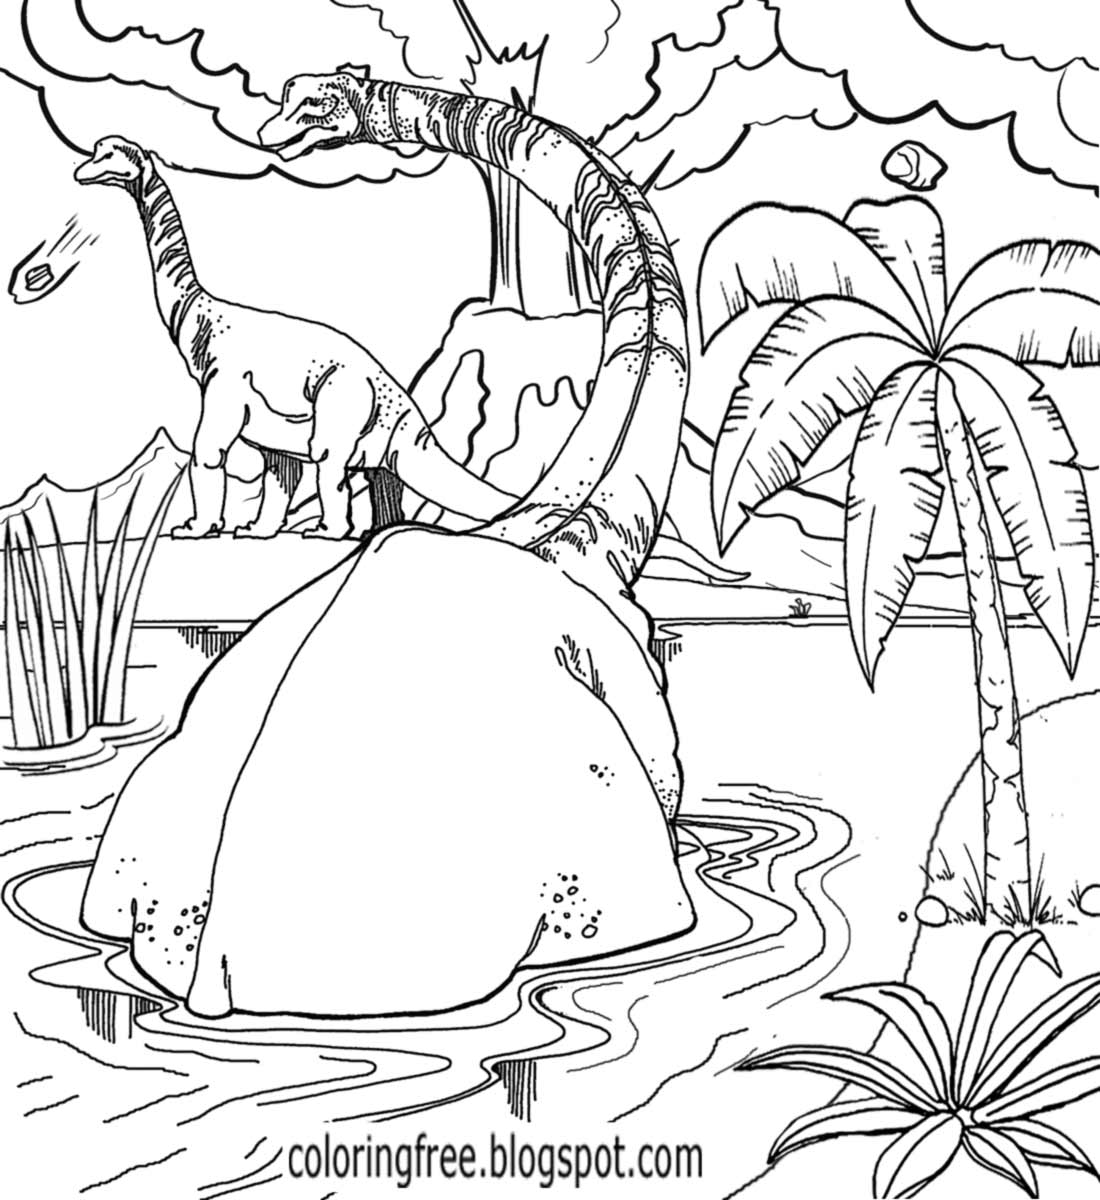 Free Coloring Pages Printable Pictures To Color Kids Drawing Ideas Prehistoric Jurassic World